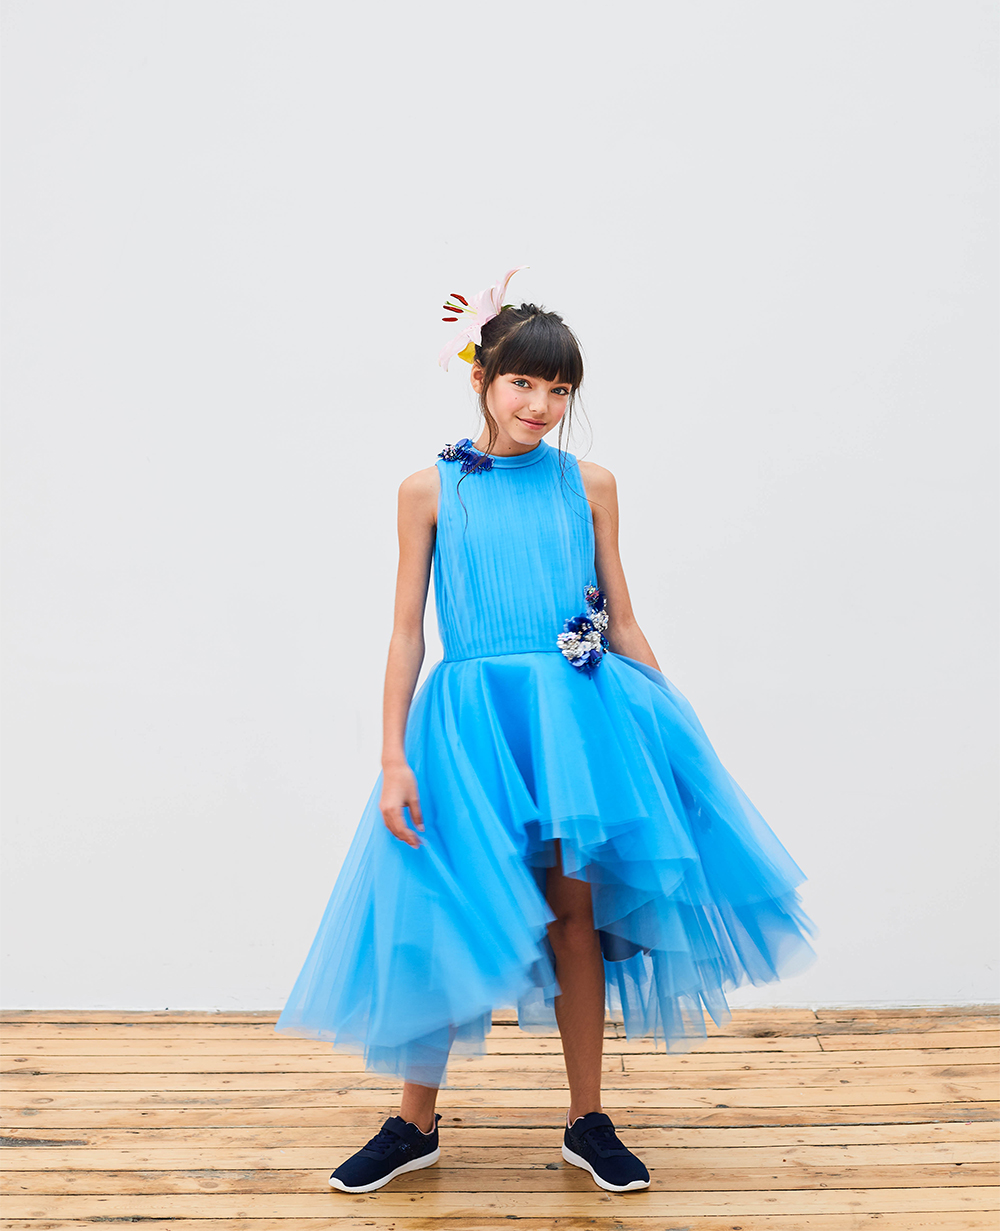 Blue Maxi Dress Tulle Skirt Sleeveless Flowergirl Wedding Dress